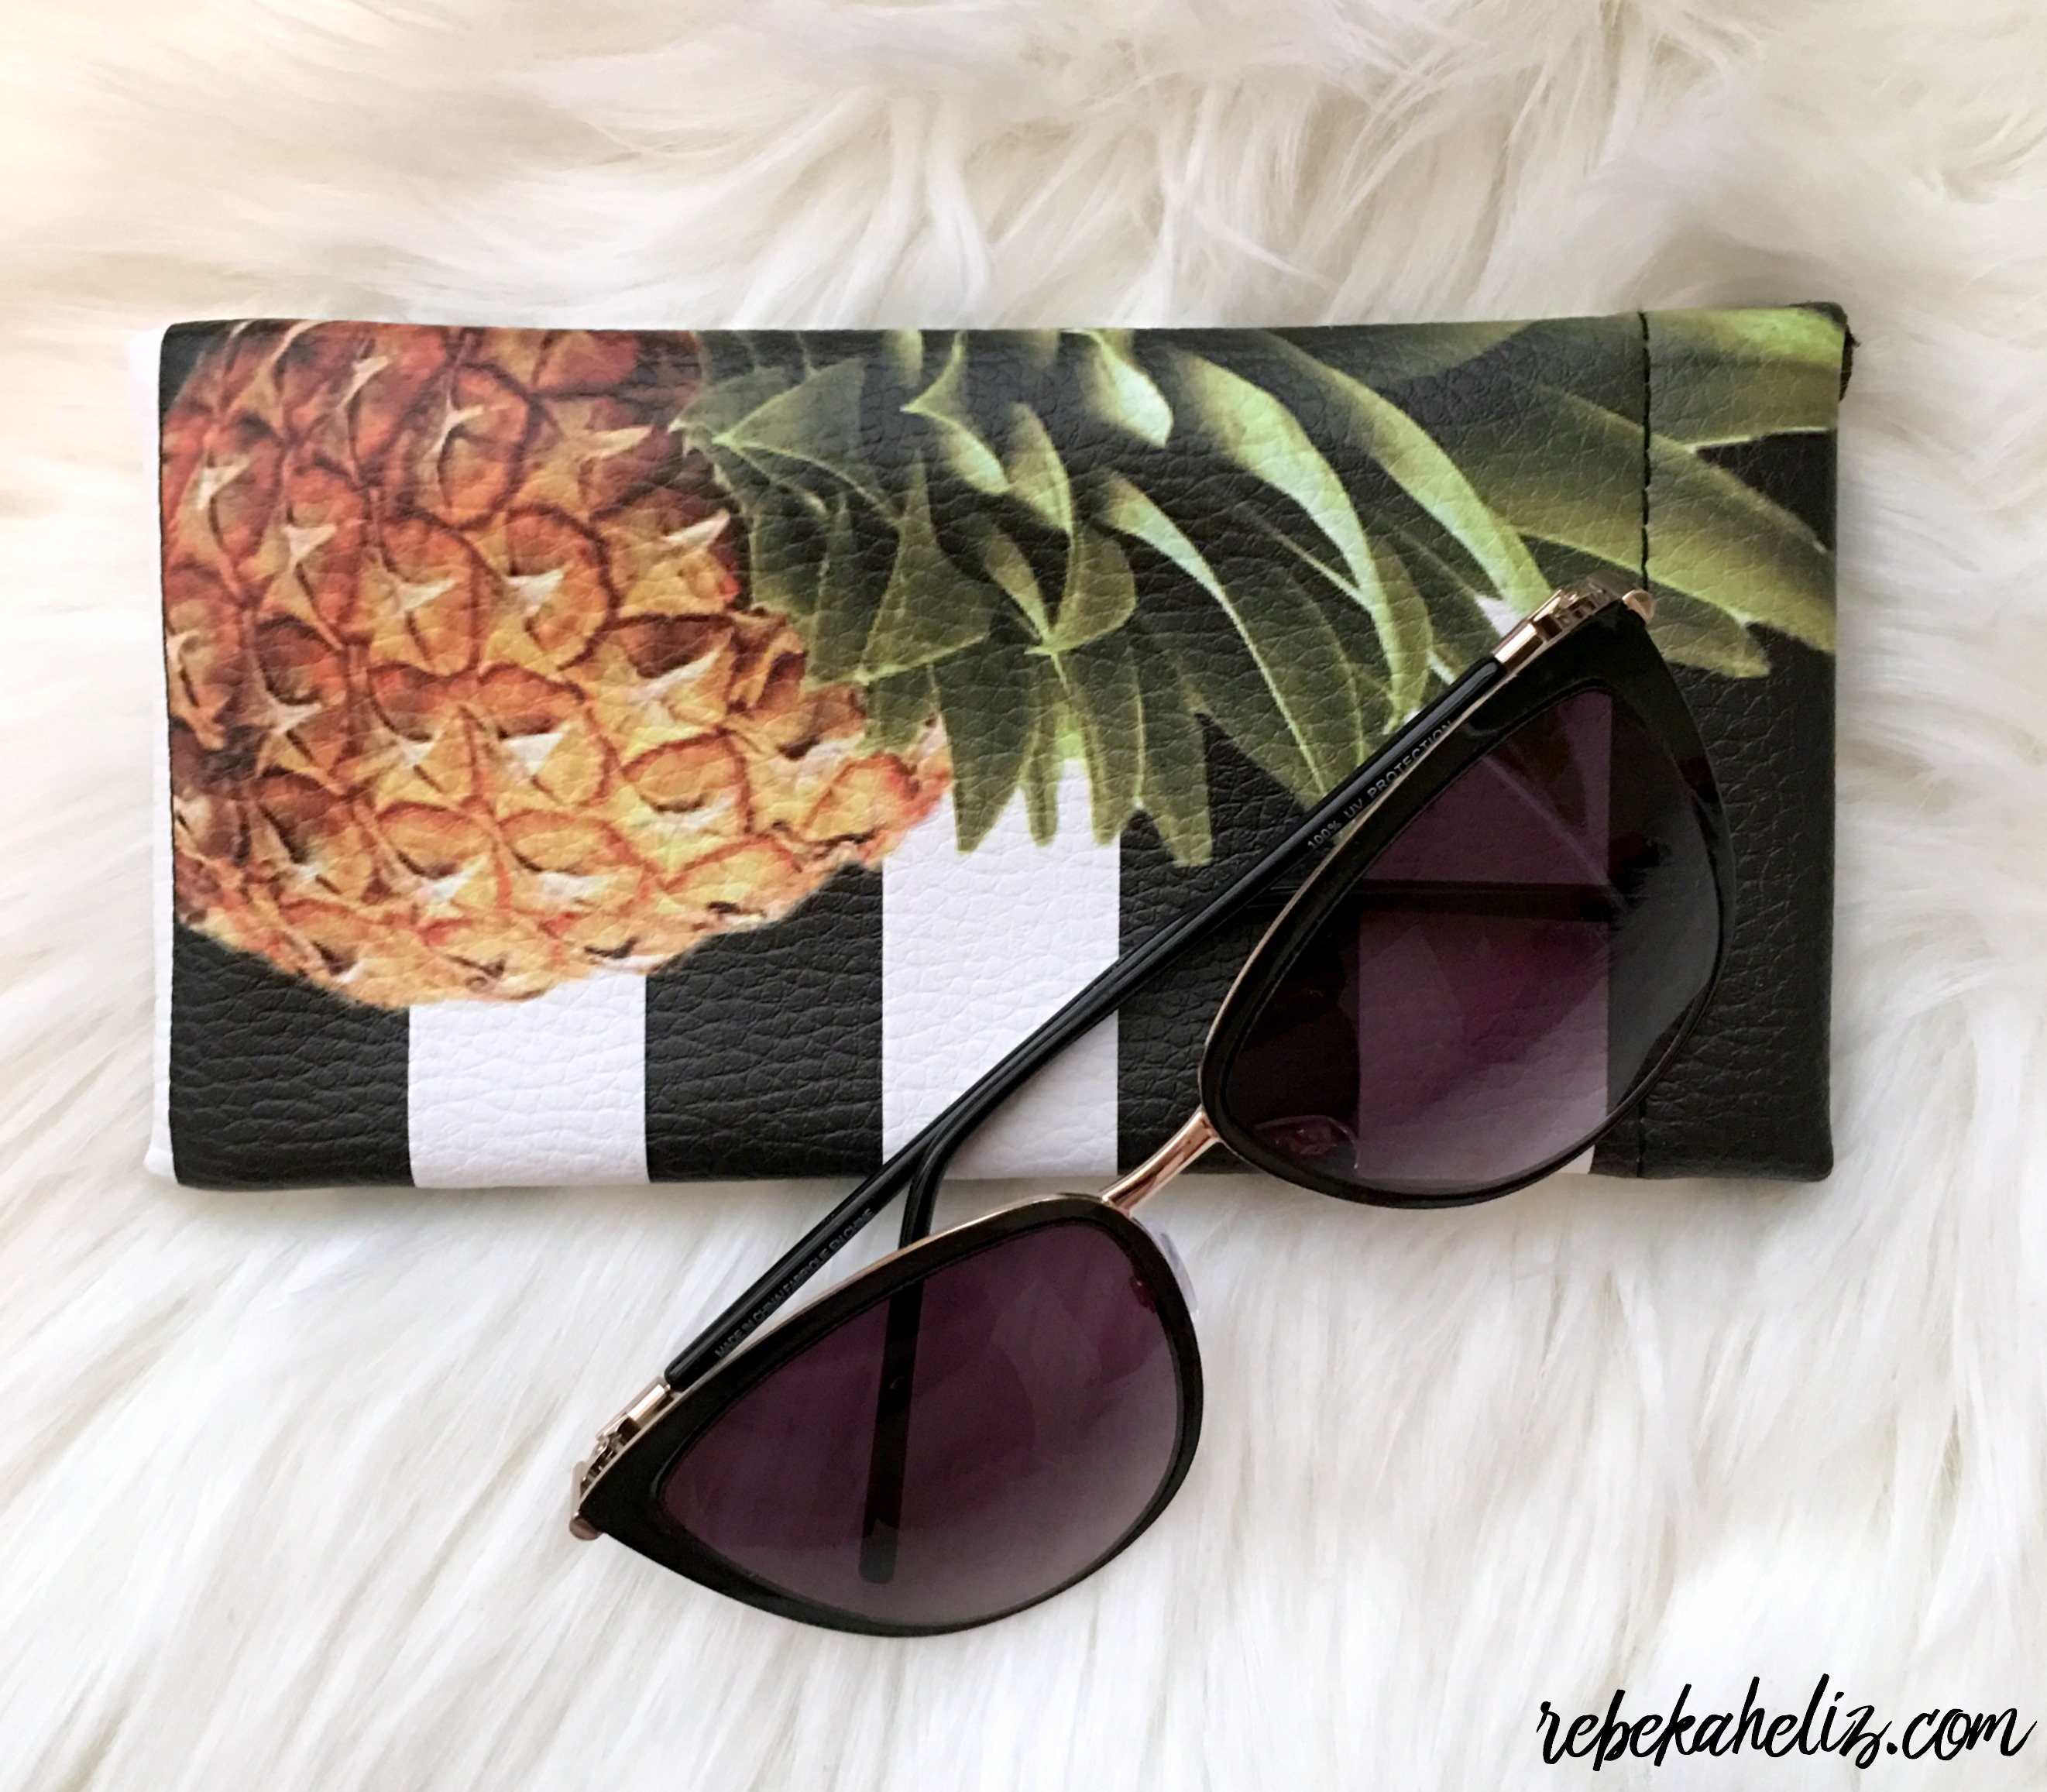 ashley stewart, spring, spring style, style, pineapple, sunglasses